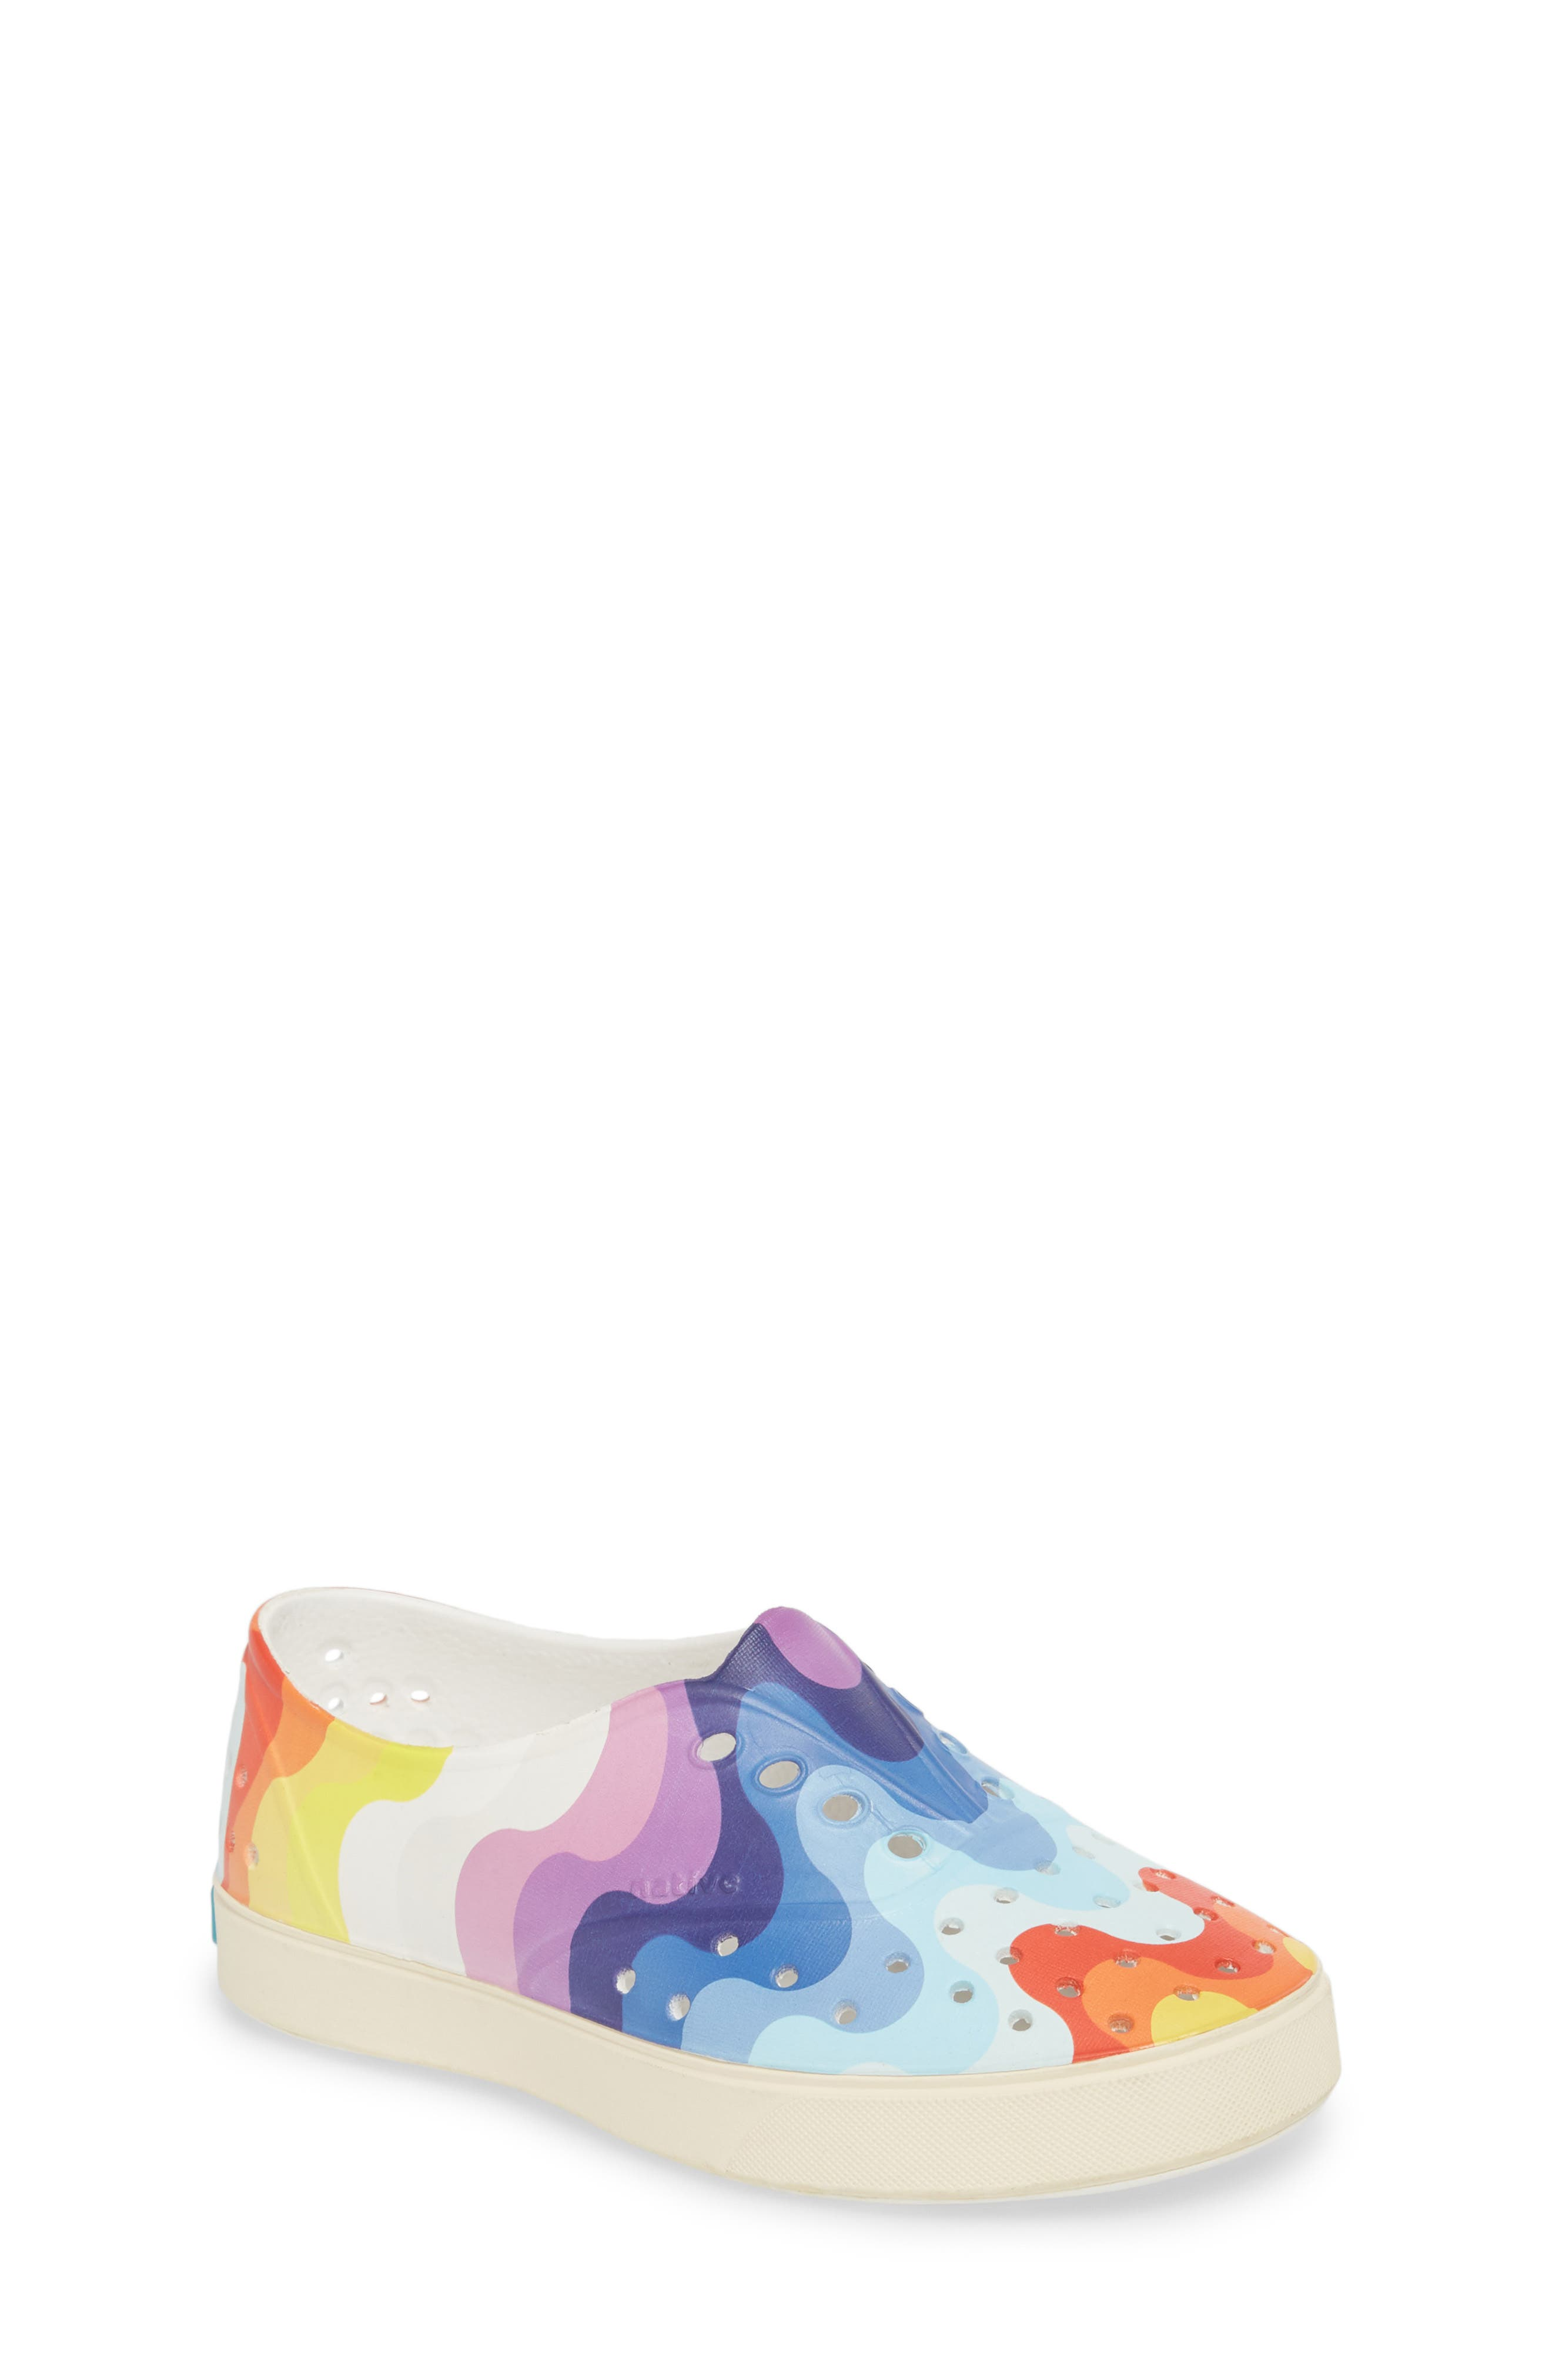 'Miller' Water Friendly Perforated Sneaker,                             Main thumbnail 1, color,                             SHELL WHITE/ RAINBOW WAVE